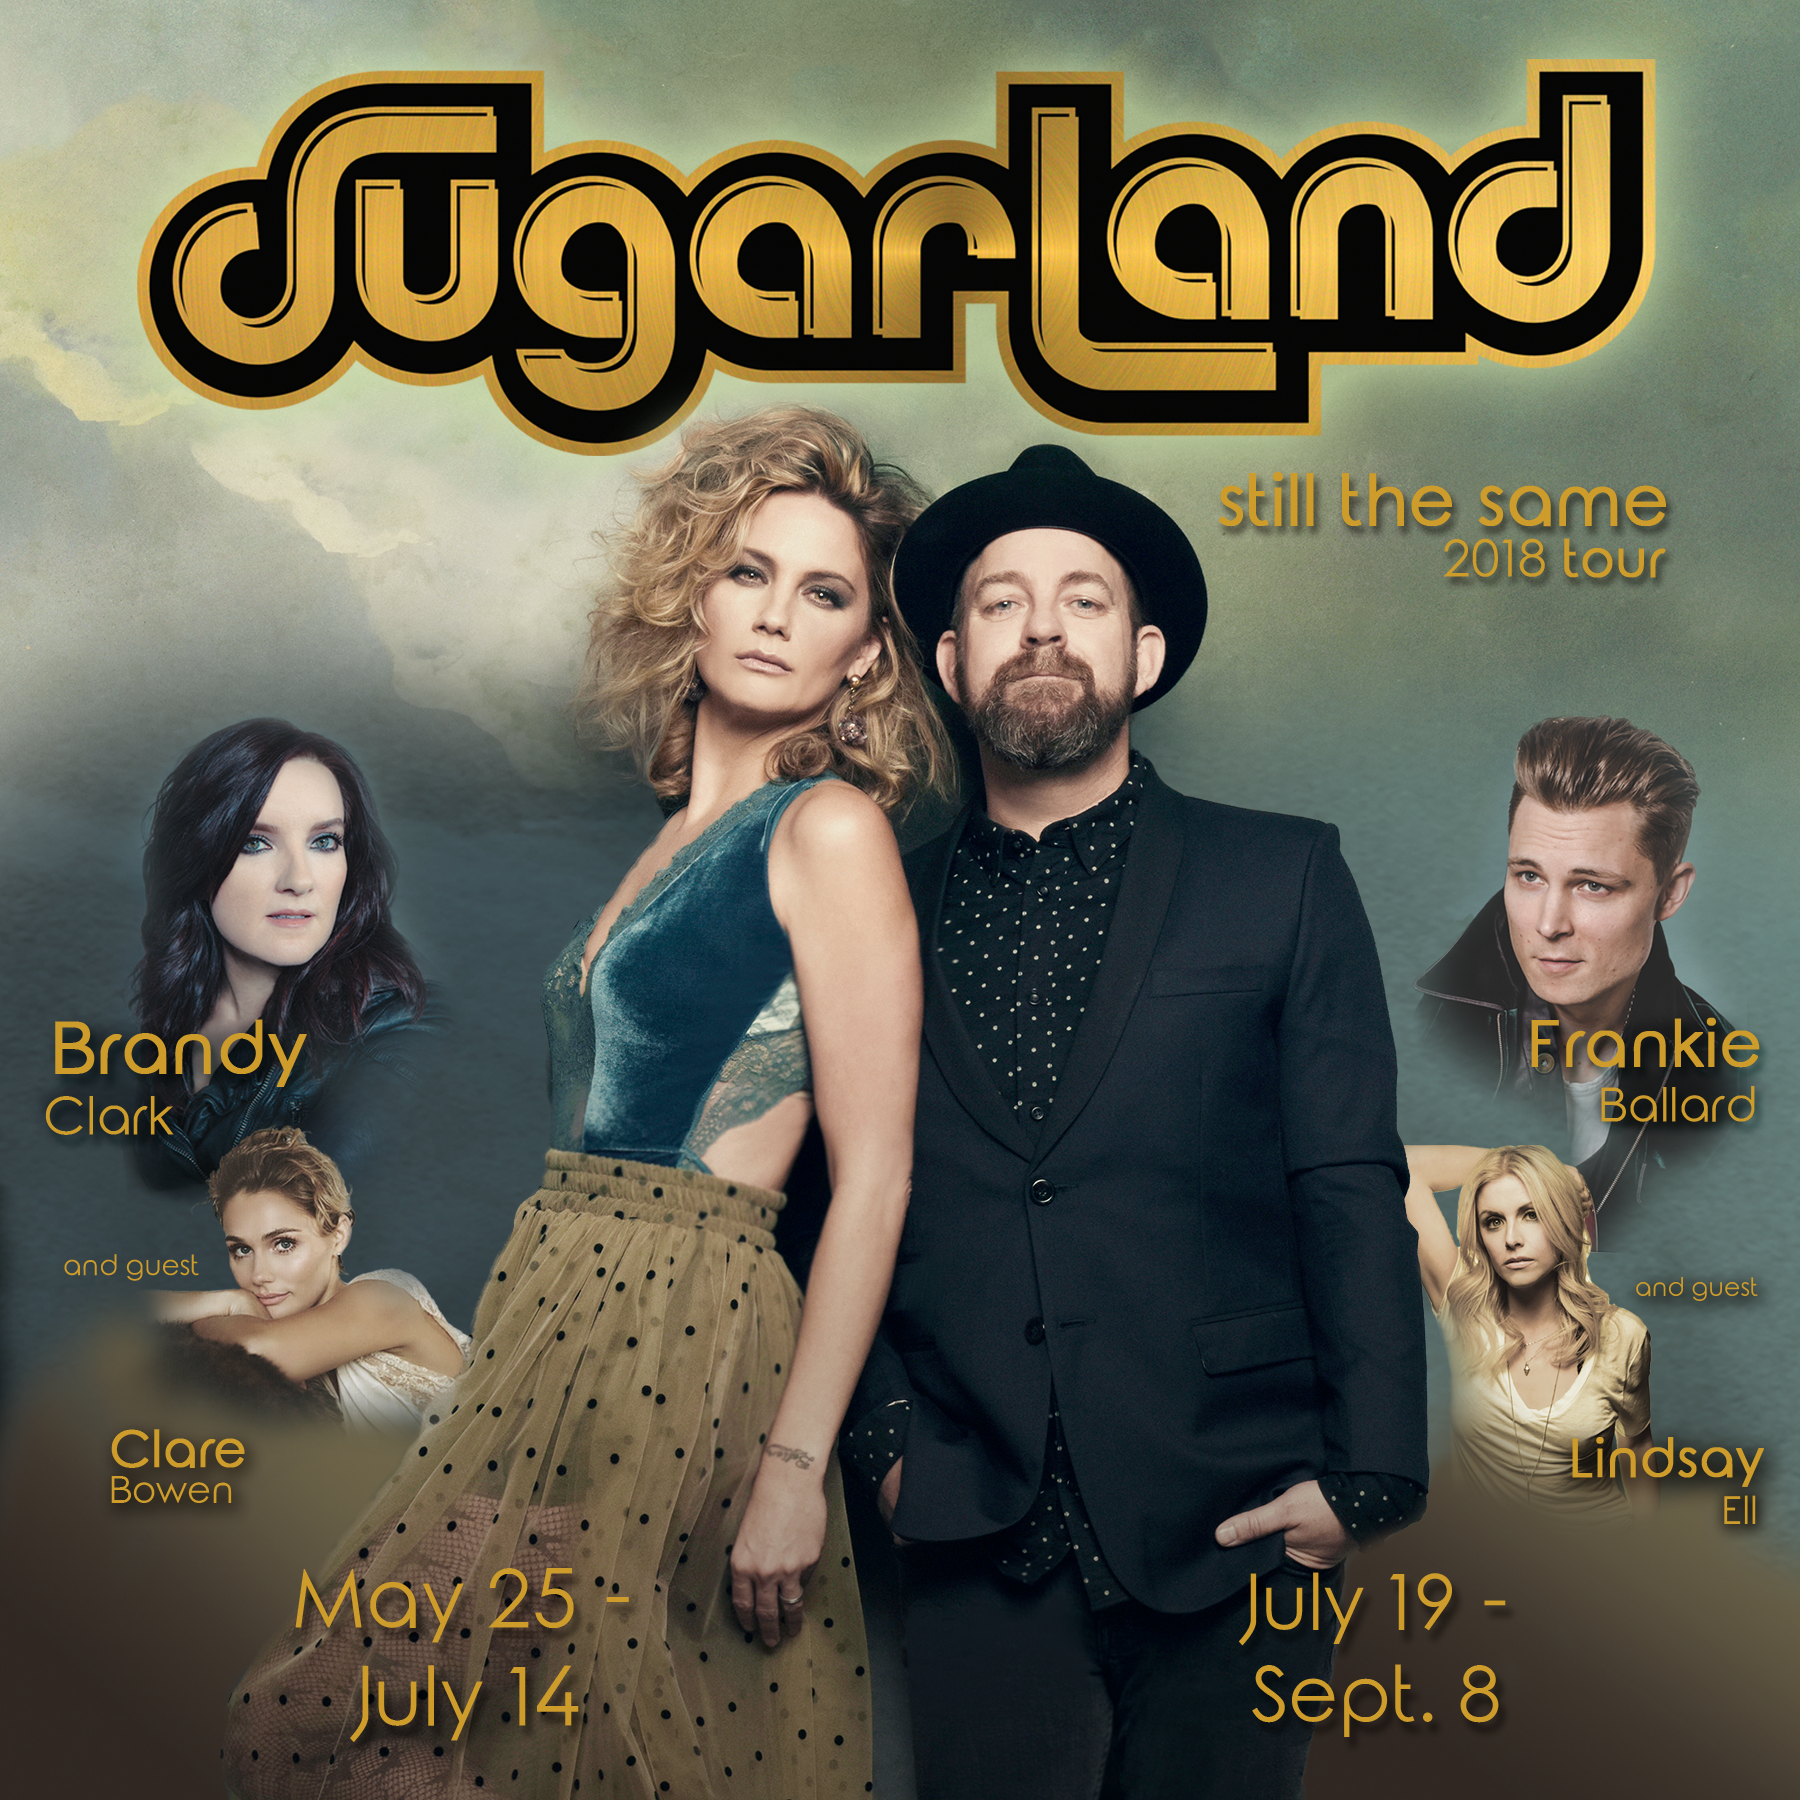 Sugarland Announces Still The Same Tour Musicrow Nashvilles